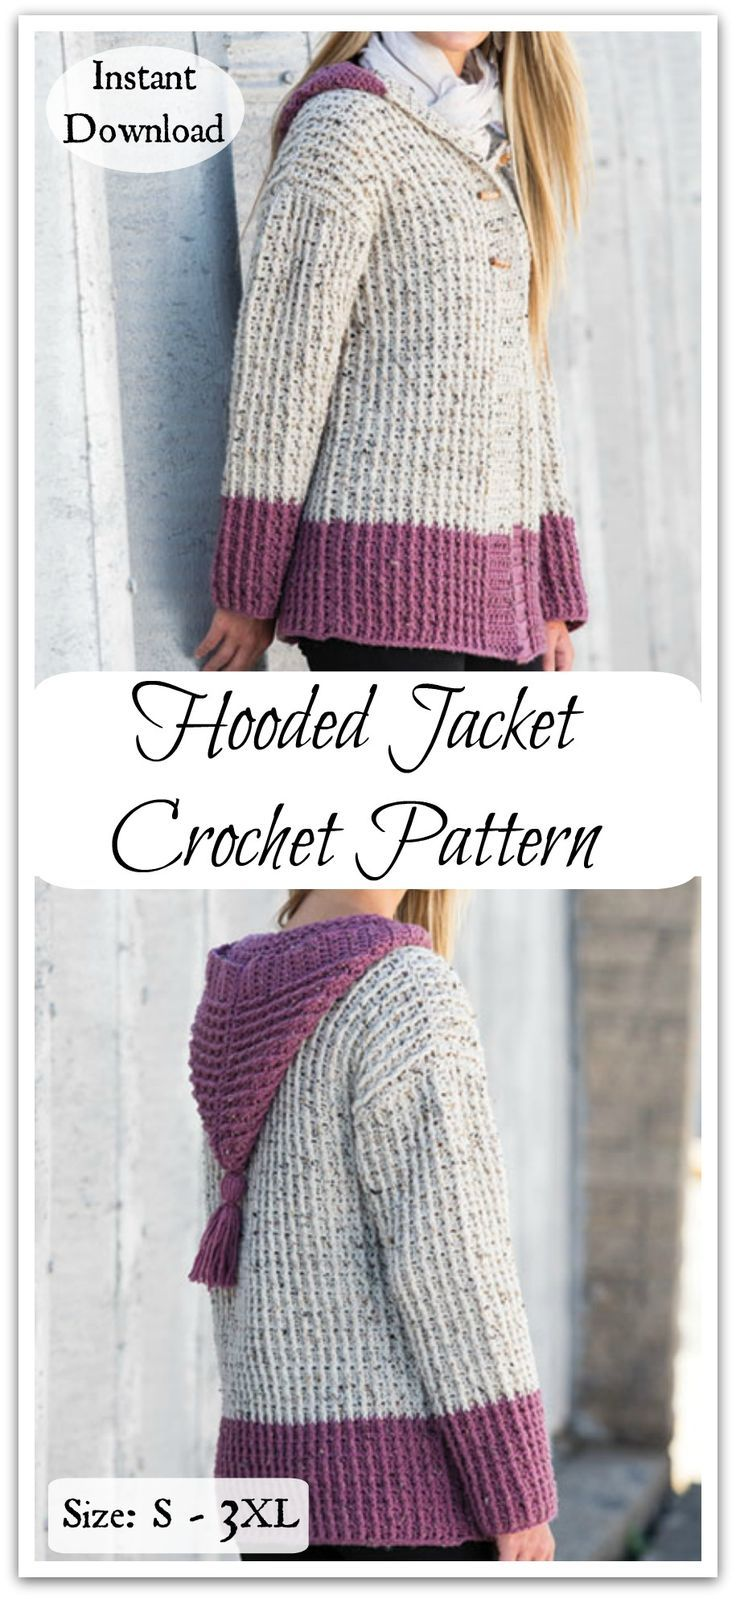 Your new favorite hoodie is here! This jacket with hood is a winning combination of warmth, comfortable drape and modern styling. #ad #affiliate #crochet #pattern